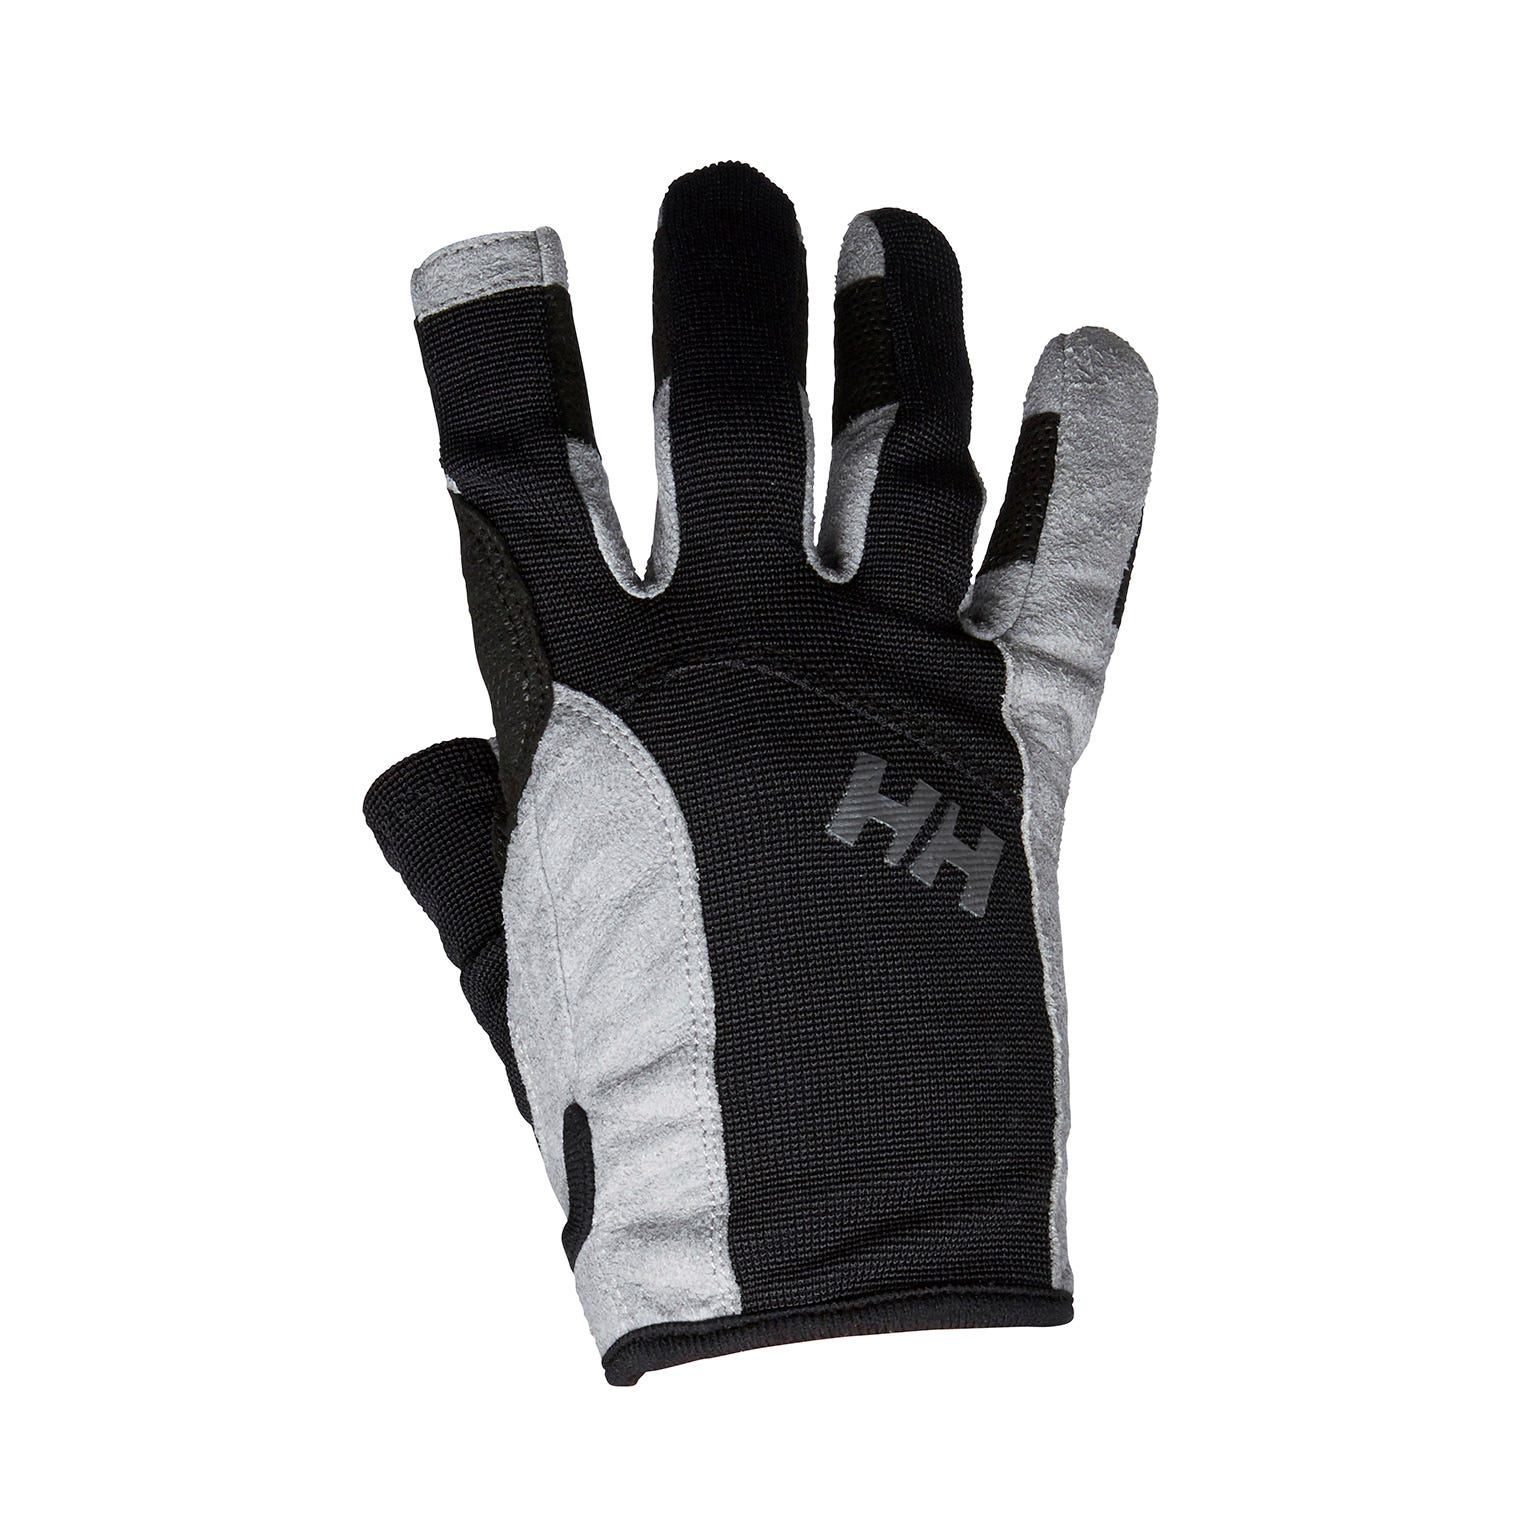 Helly Hansen Sailing Glove Long Black XS